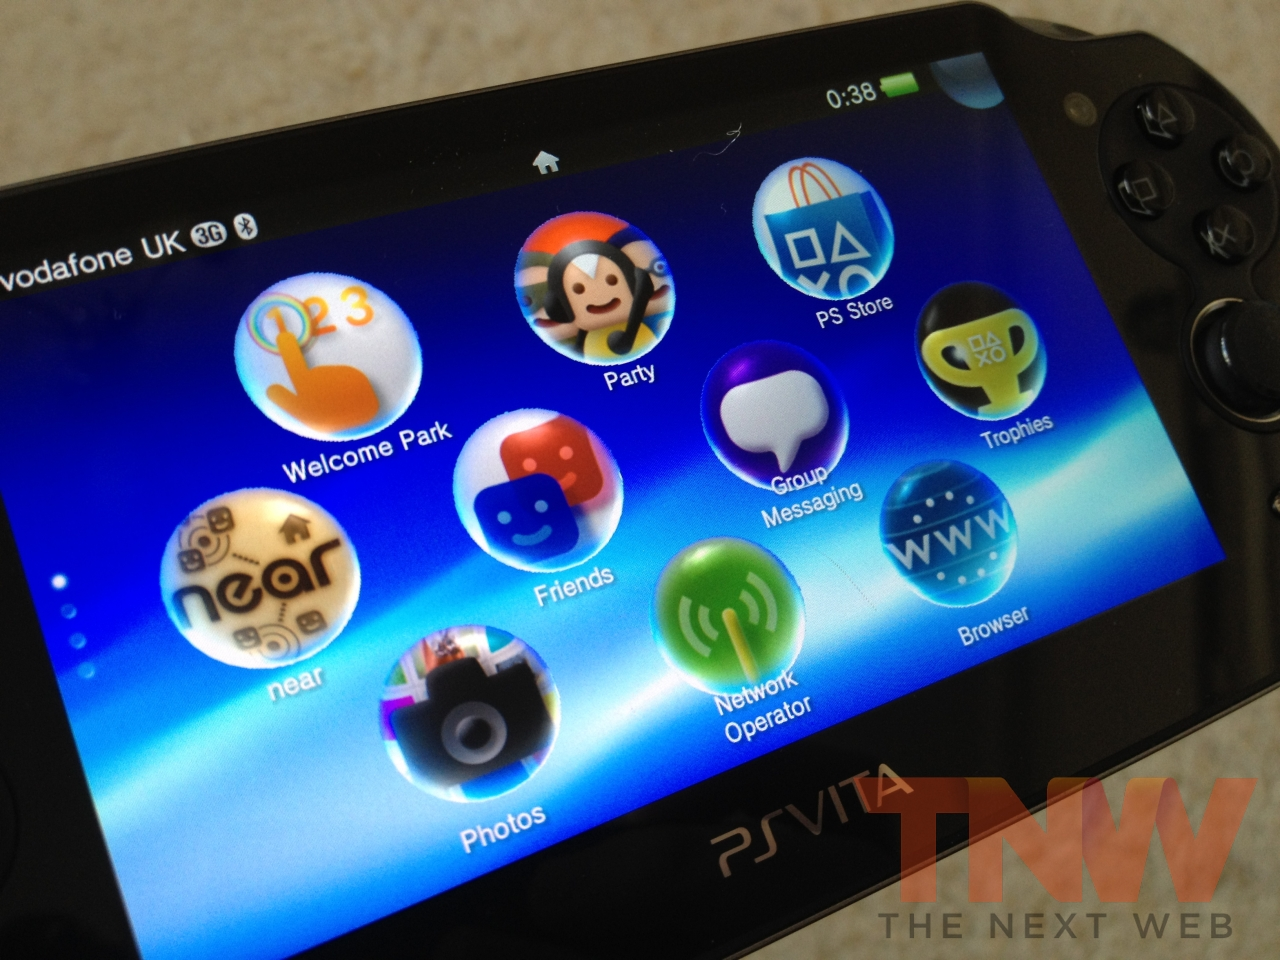 Sony PlayStation Vita review: Hands-down the best gaming handheld available today